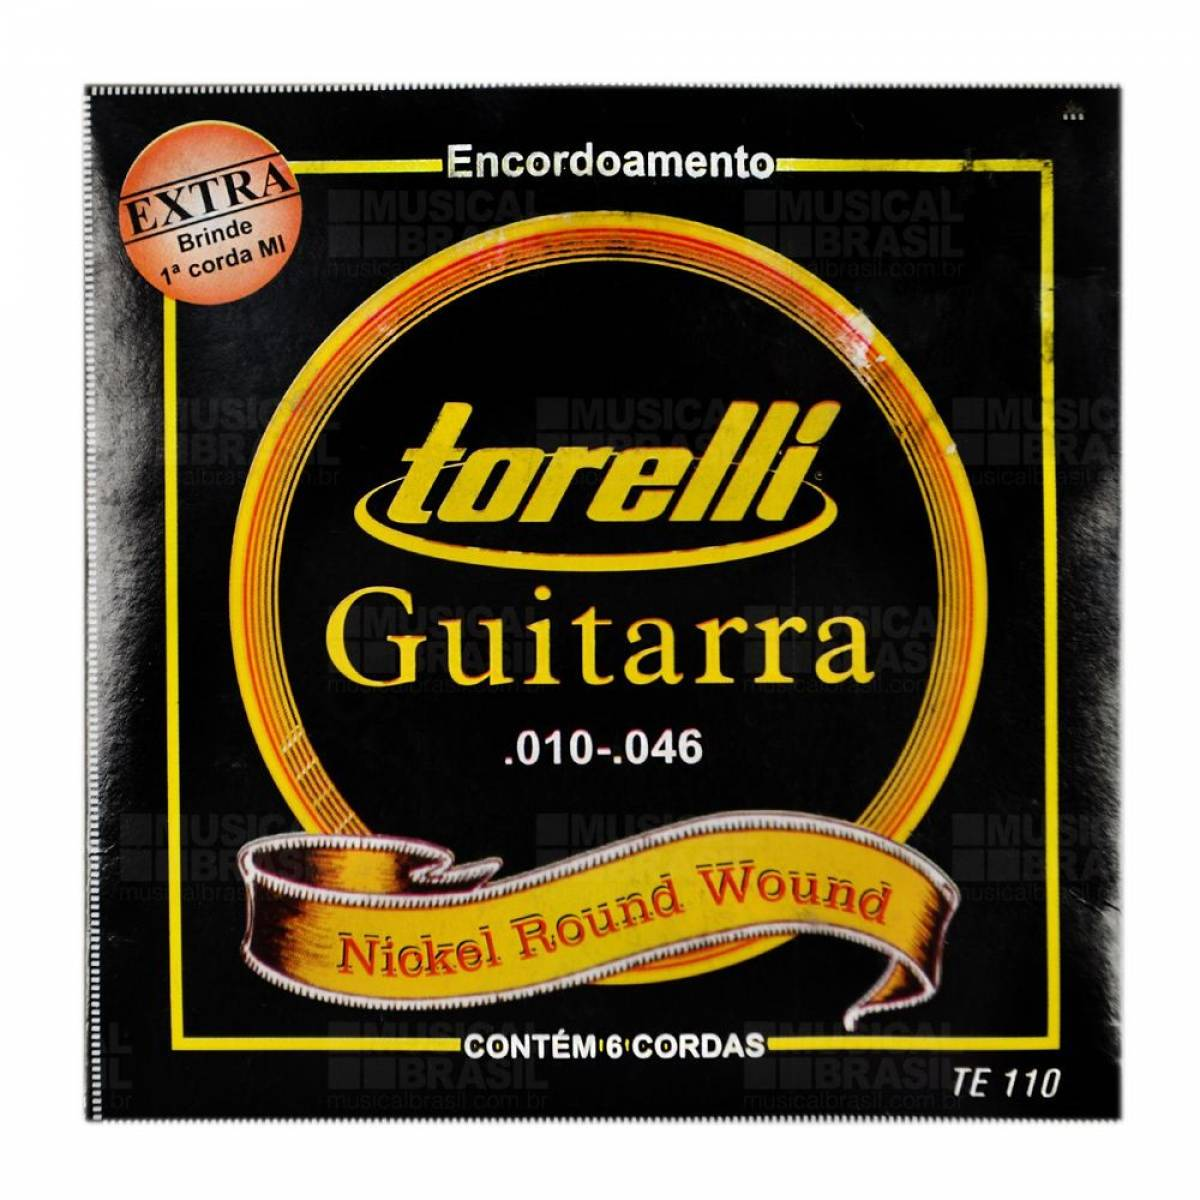 Encordoamento Guitarra Torelli TE 110 .010